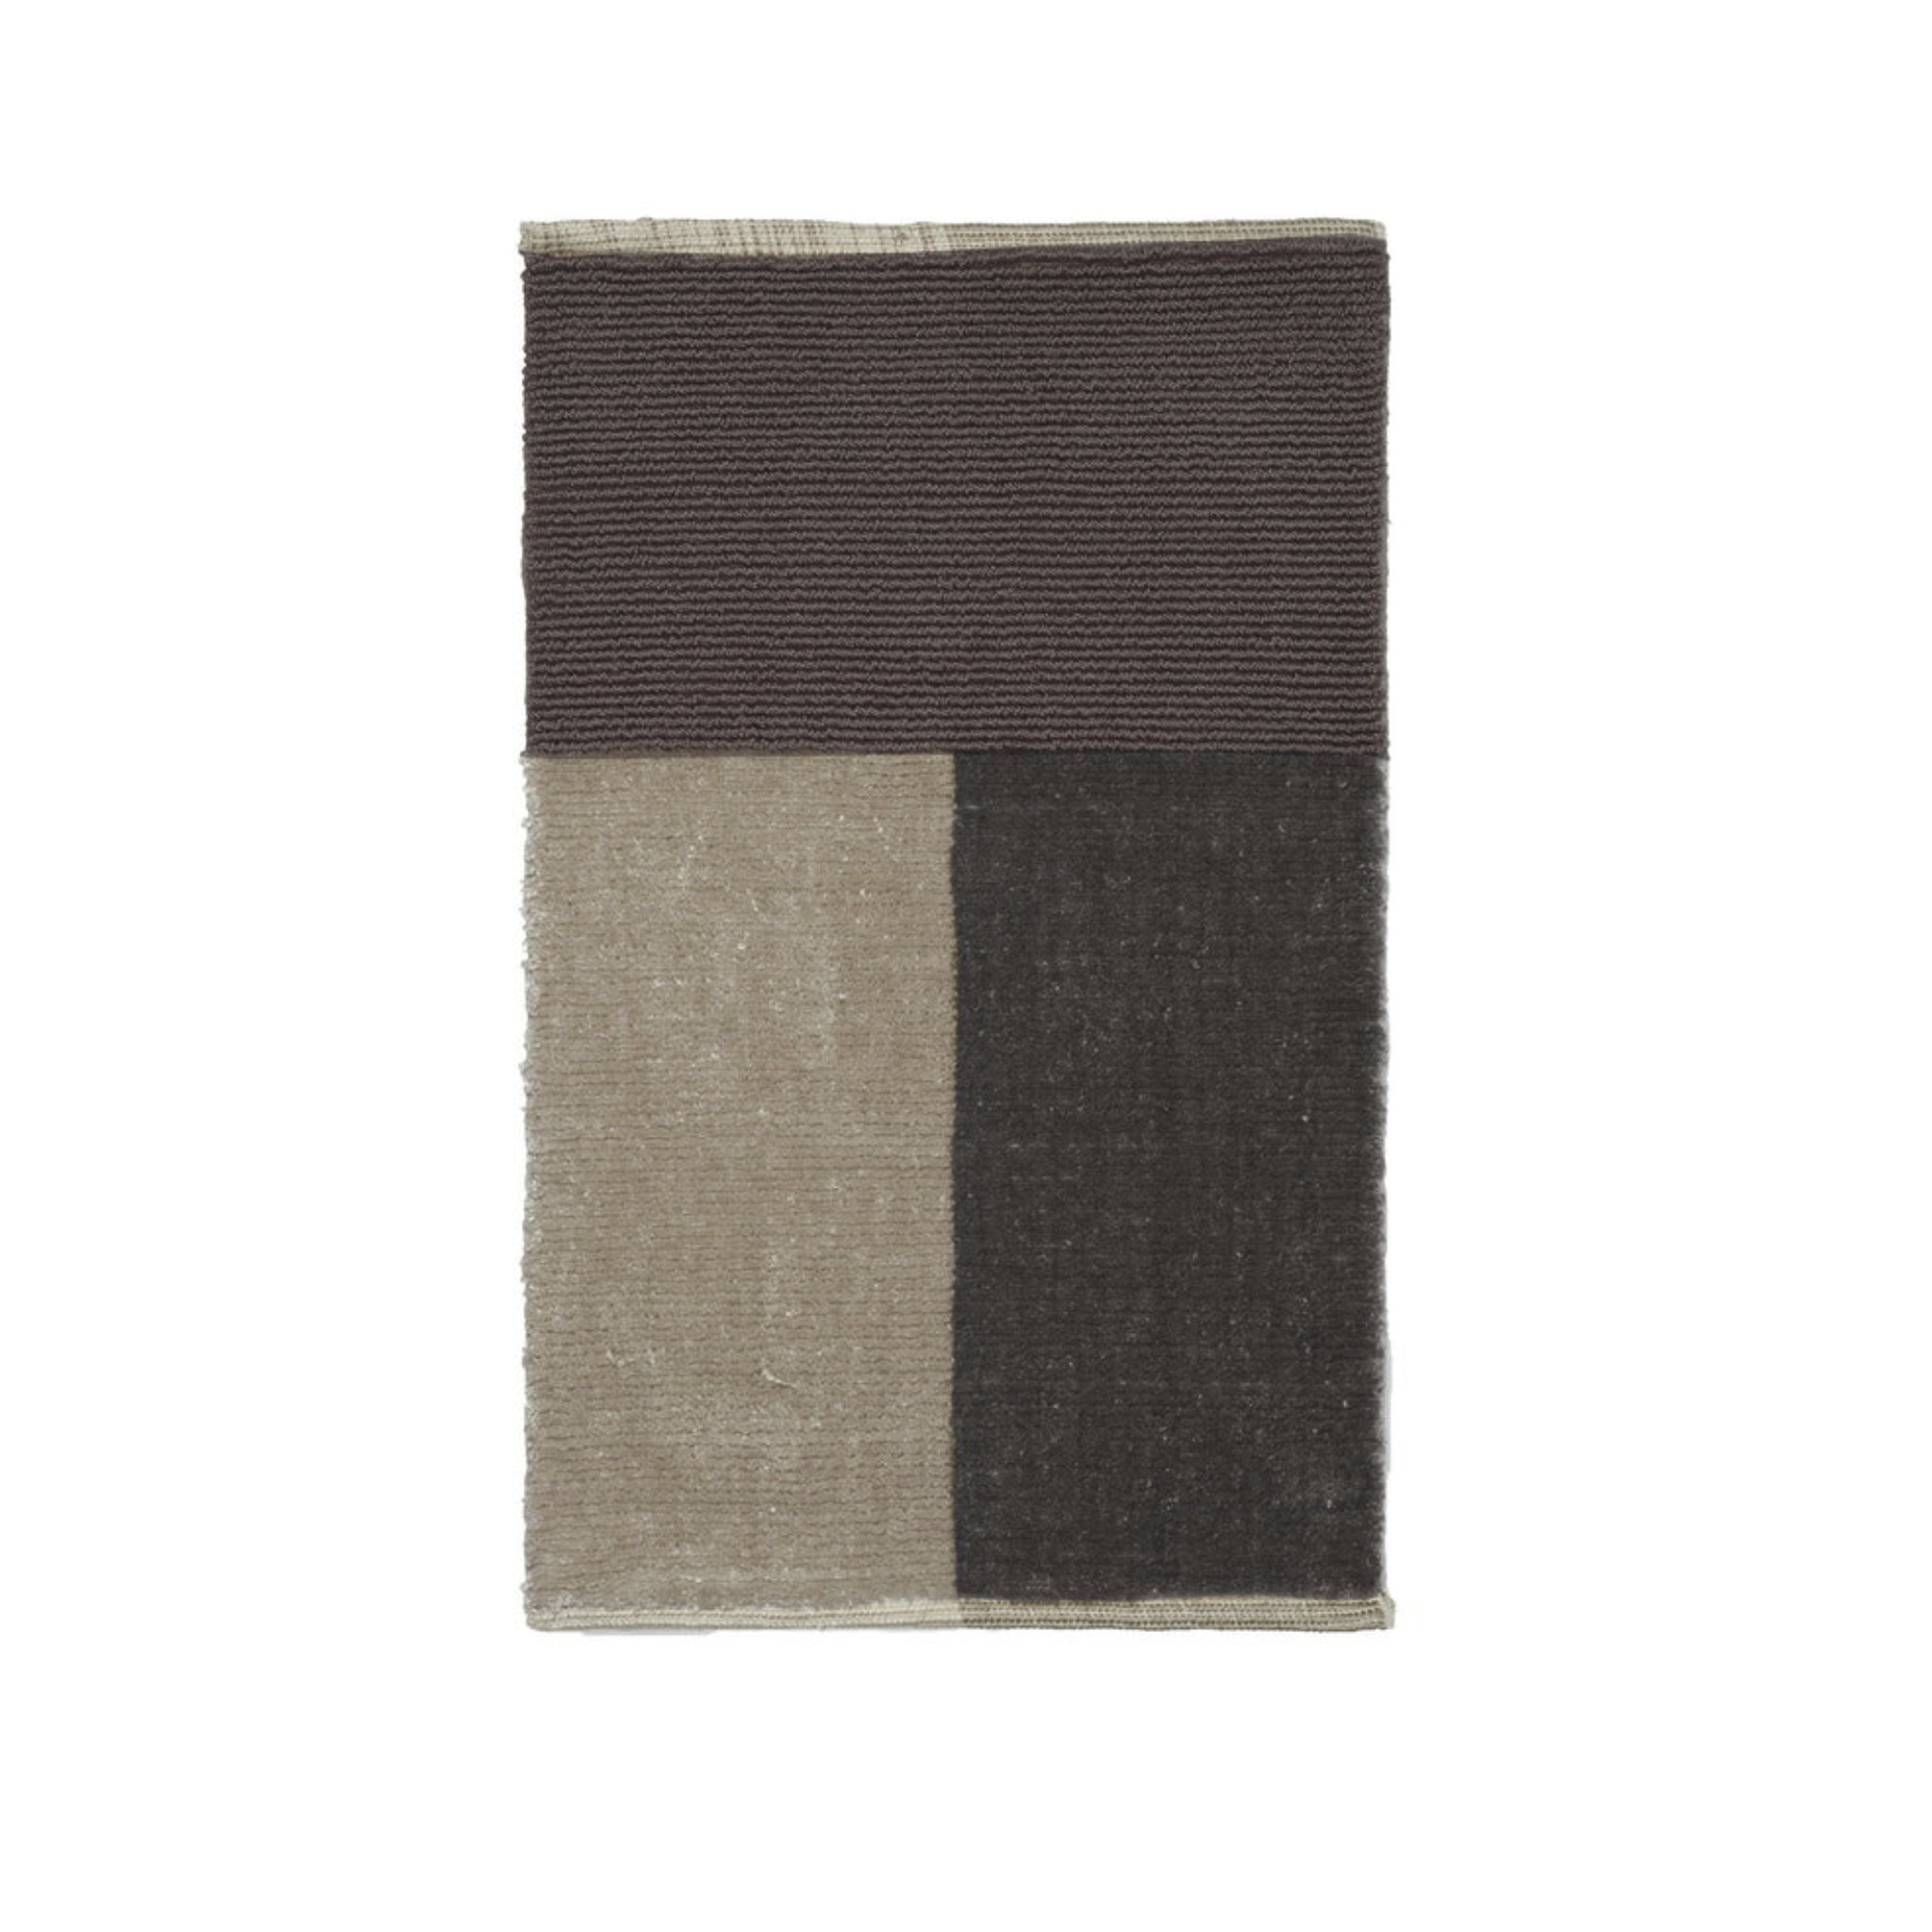 Ferm Living Pile Bath Mat- Brown